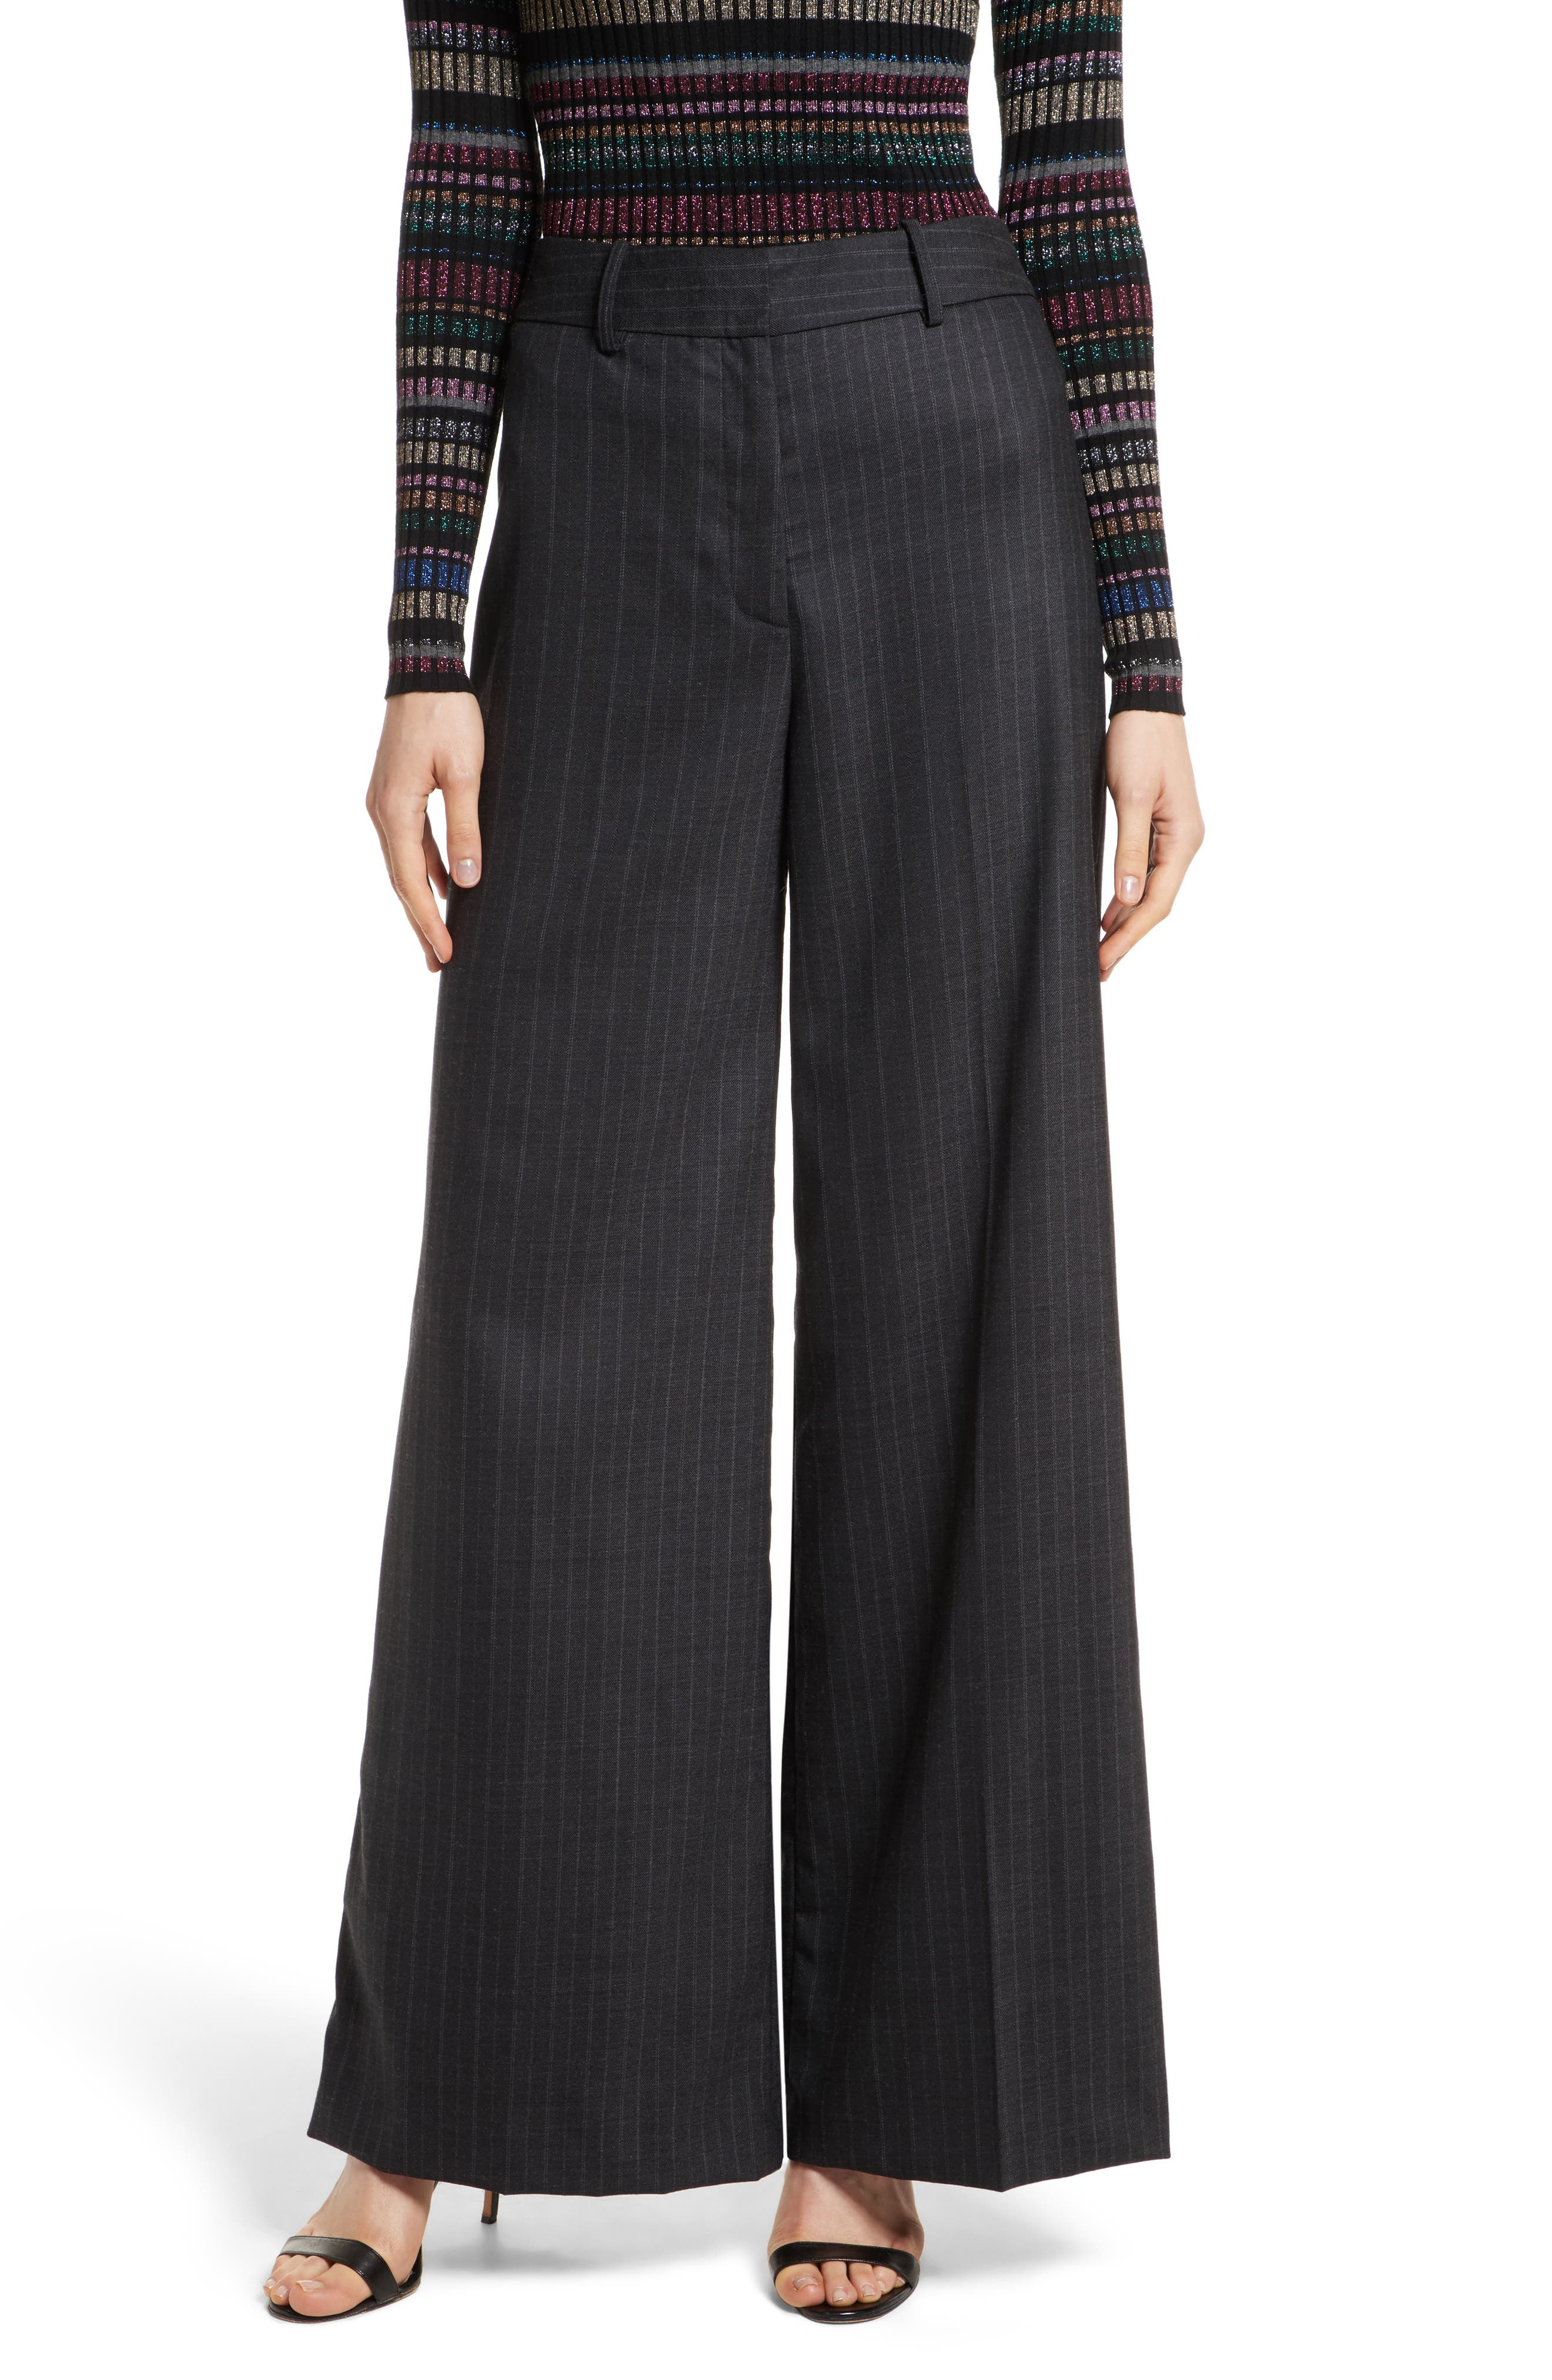 Sia Pinstripe Italian Stretch Wool Trousers,                             Main thumbnail 1, color,                             020